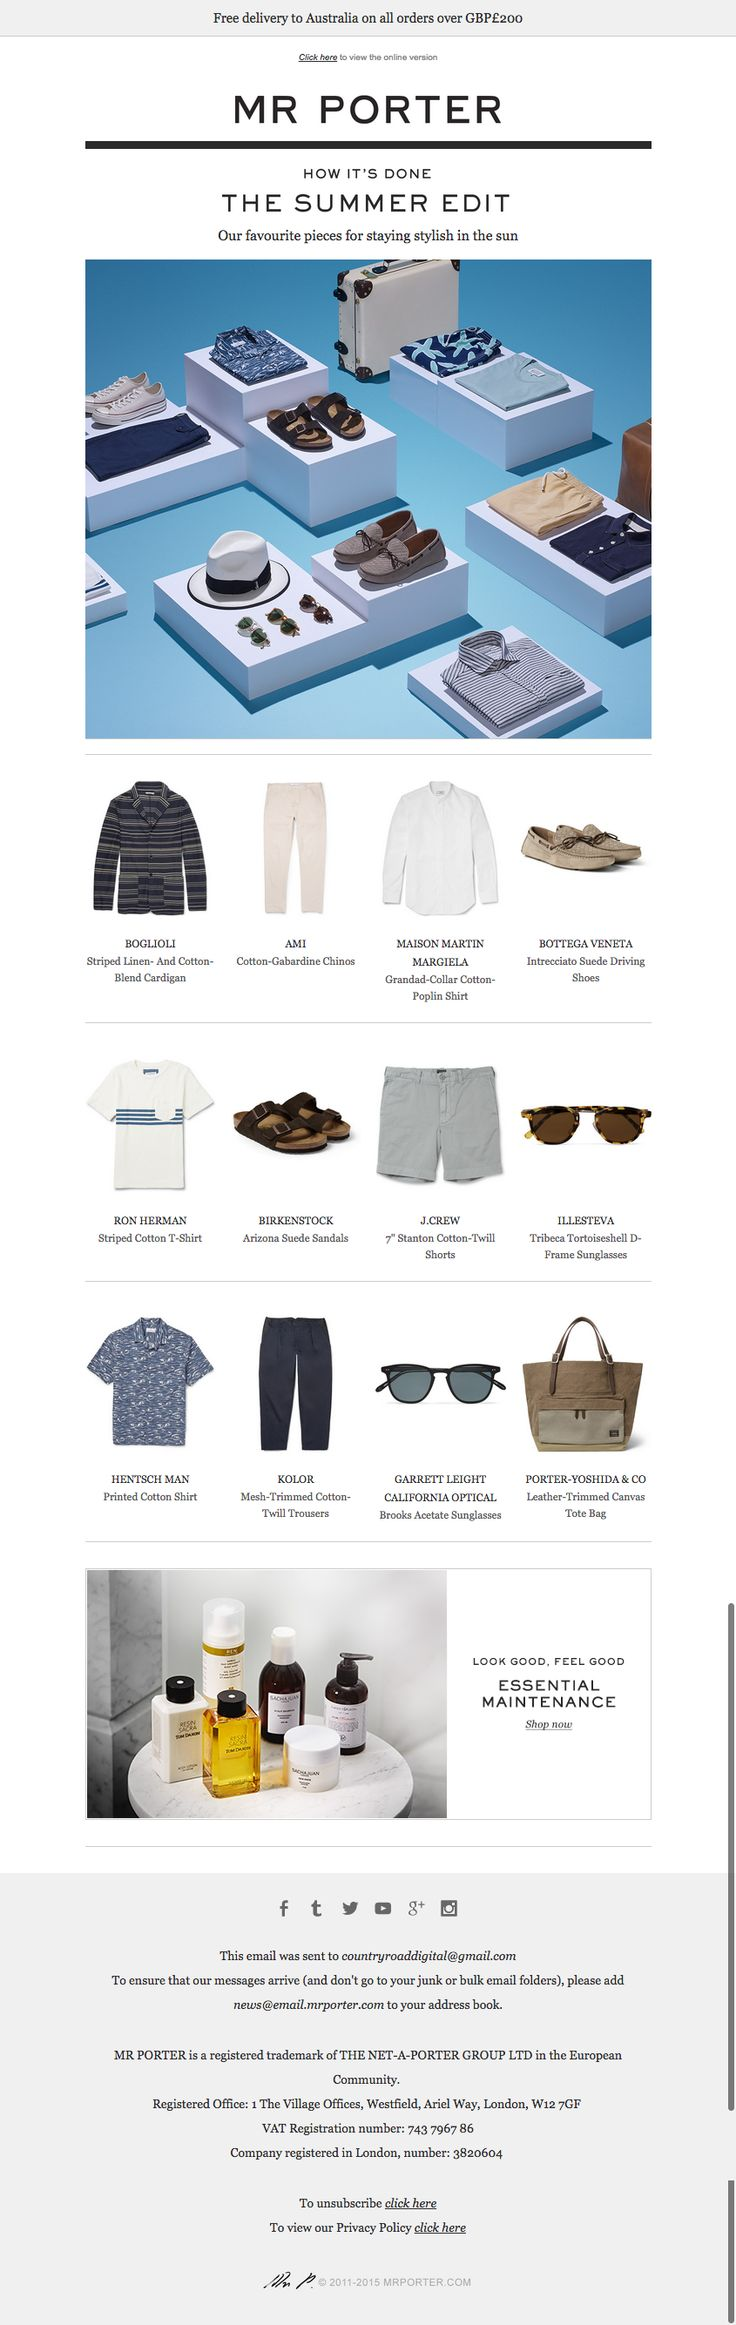 Mr Porter Promo Code | Gladys Porter Zoo | Tracy Porter Bedding